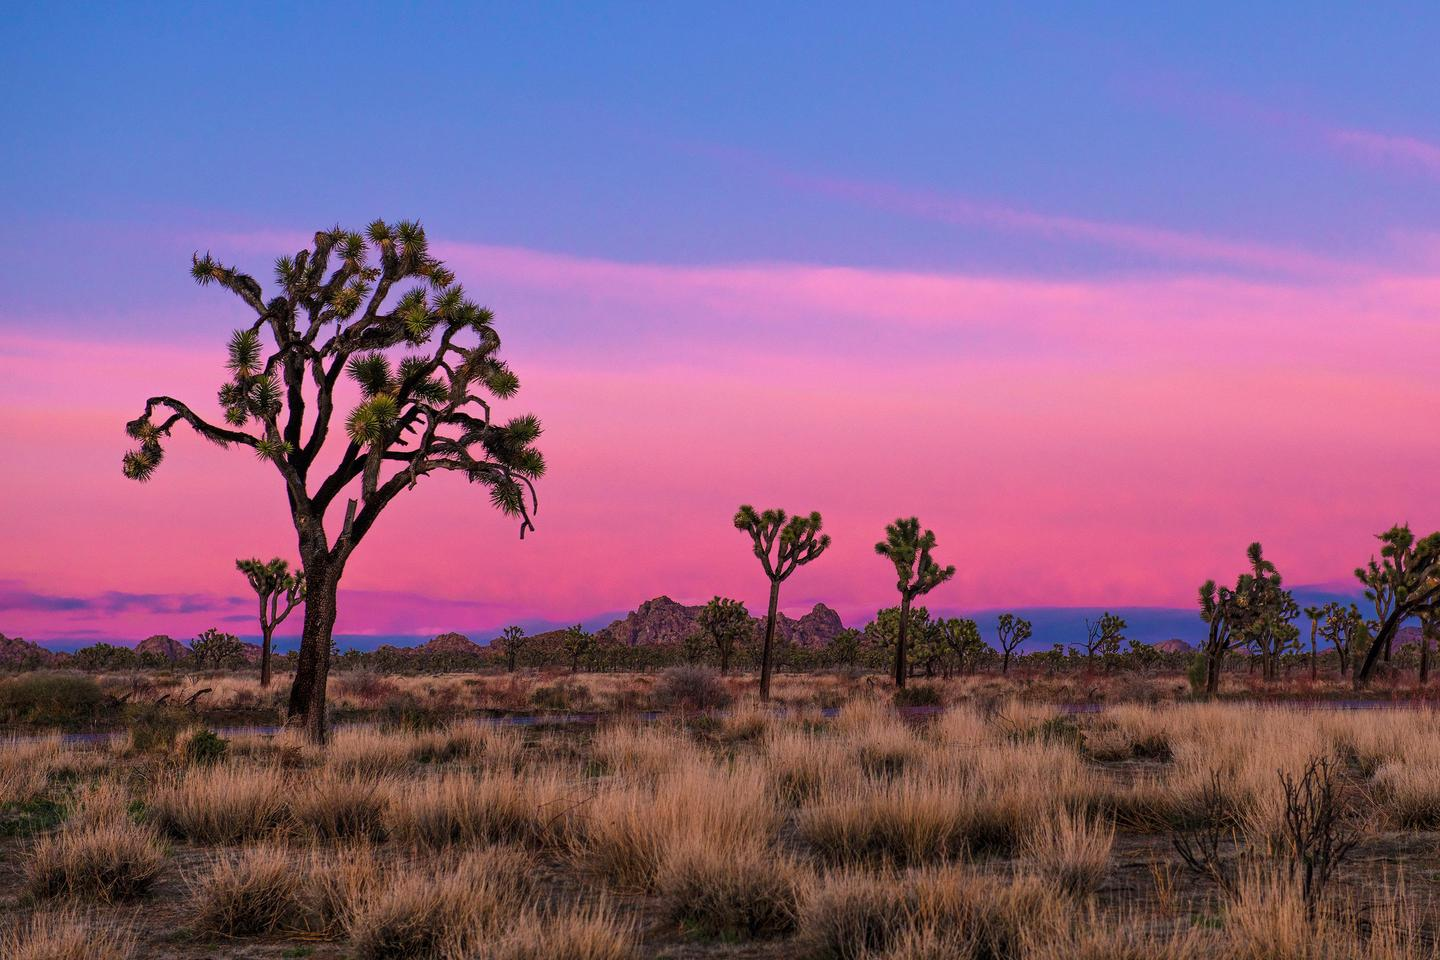 Preview photo of Joshua Tree National Park